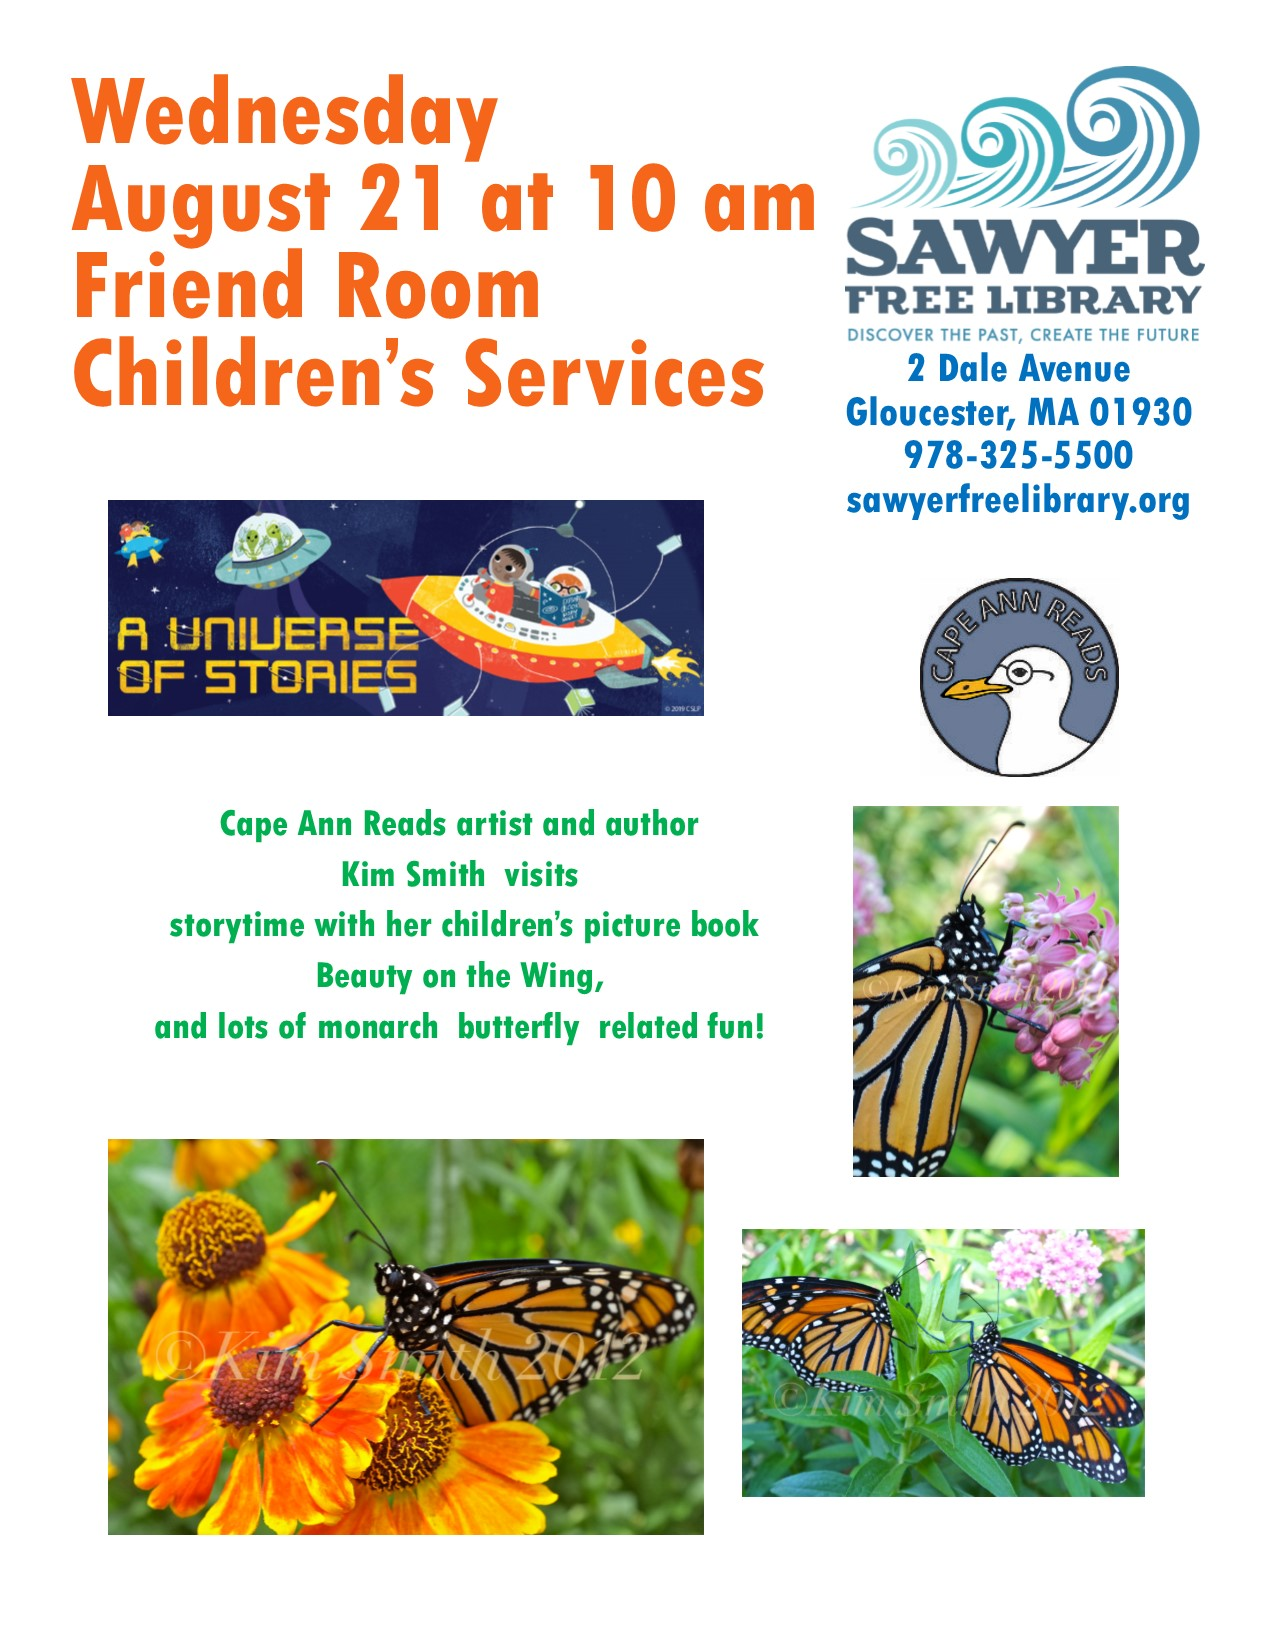 KIM SMITH FREE MONARCH EVENT FOR KIDS AT THE SAWYER FREE LIBRARY